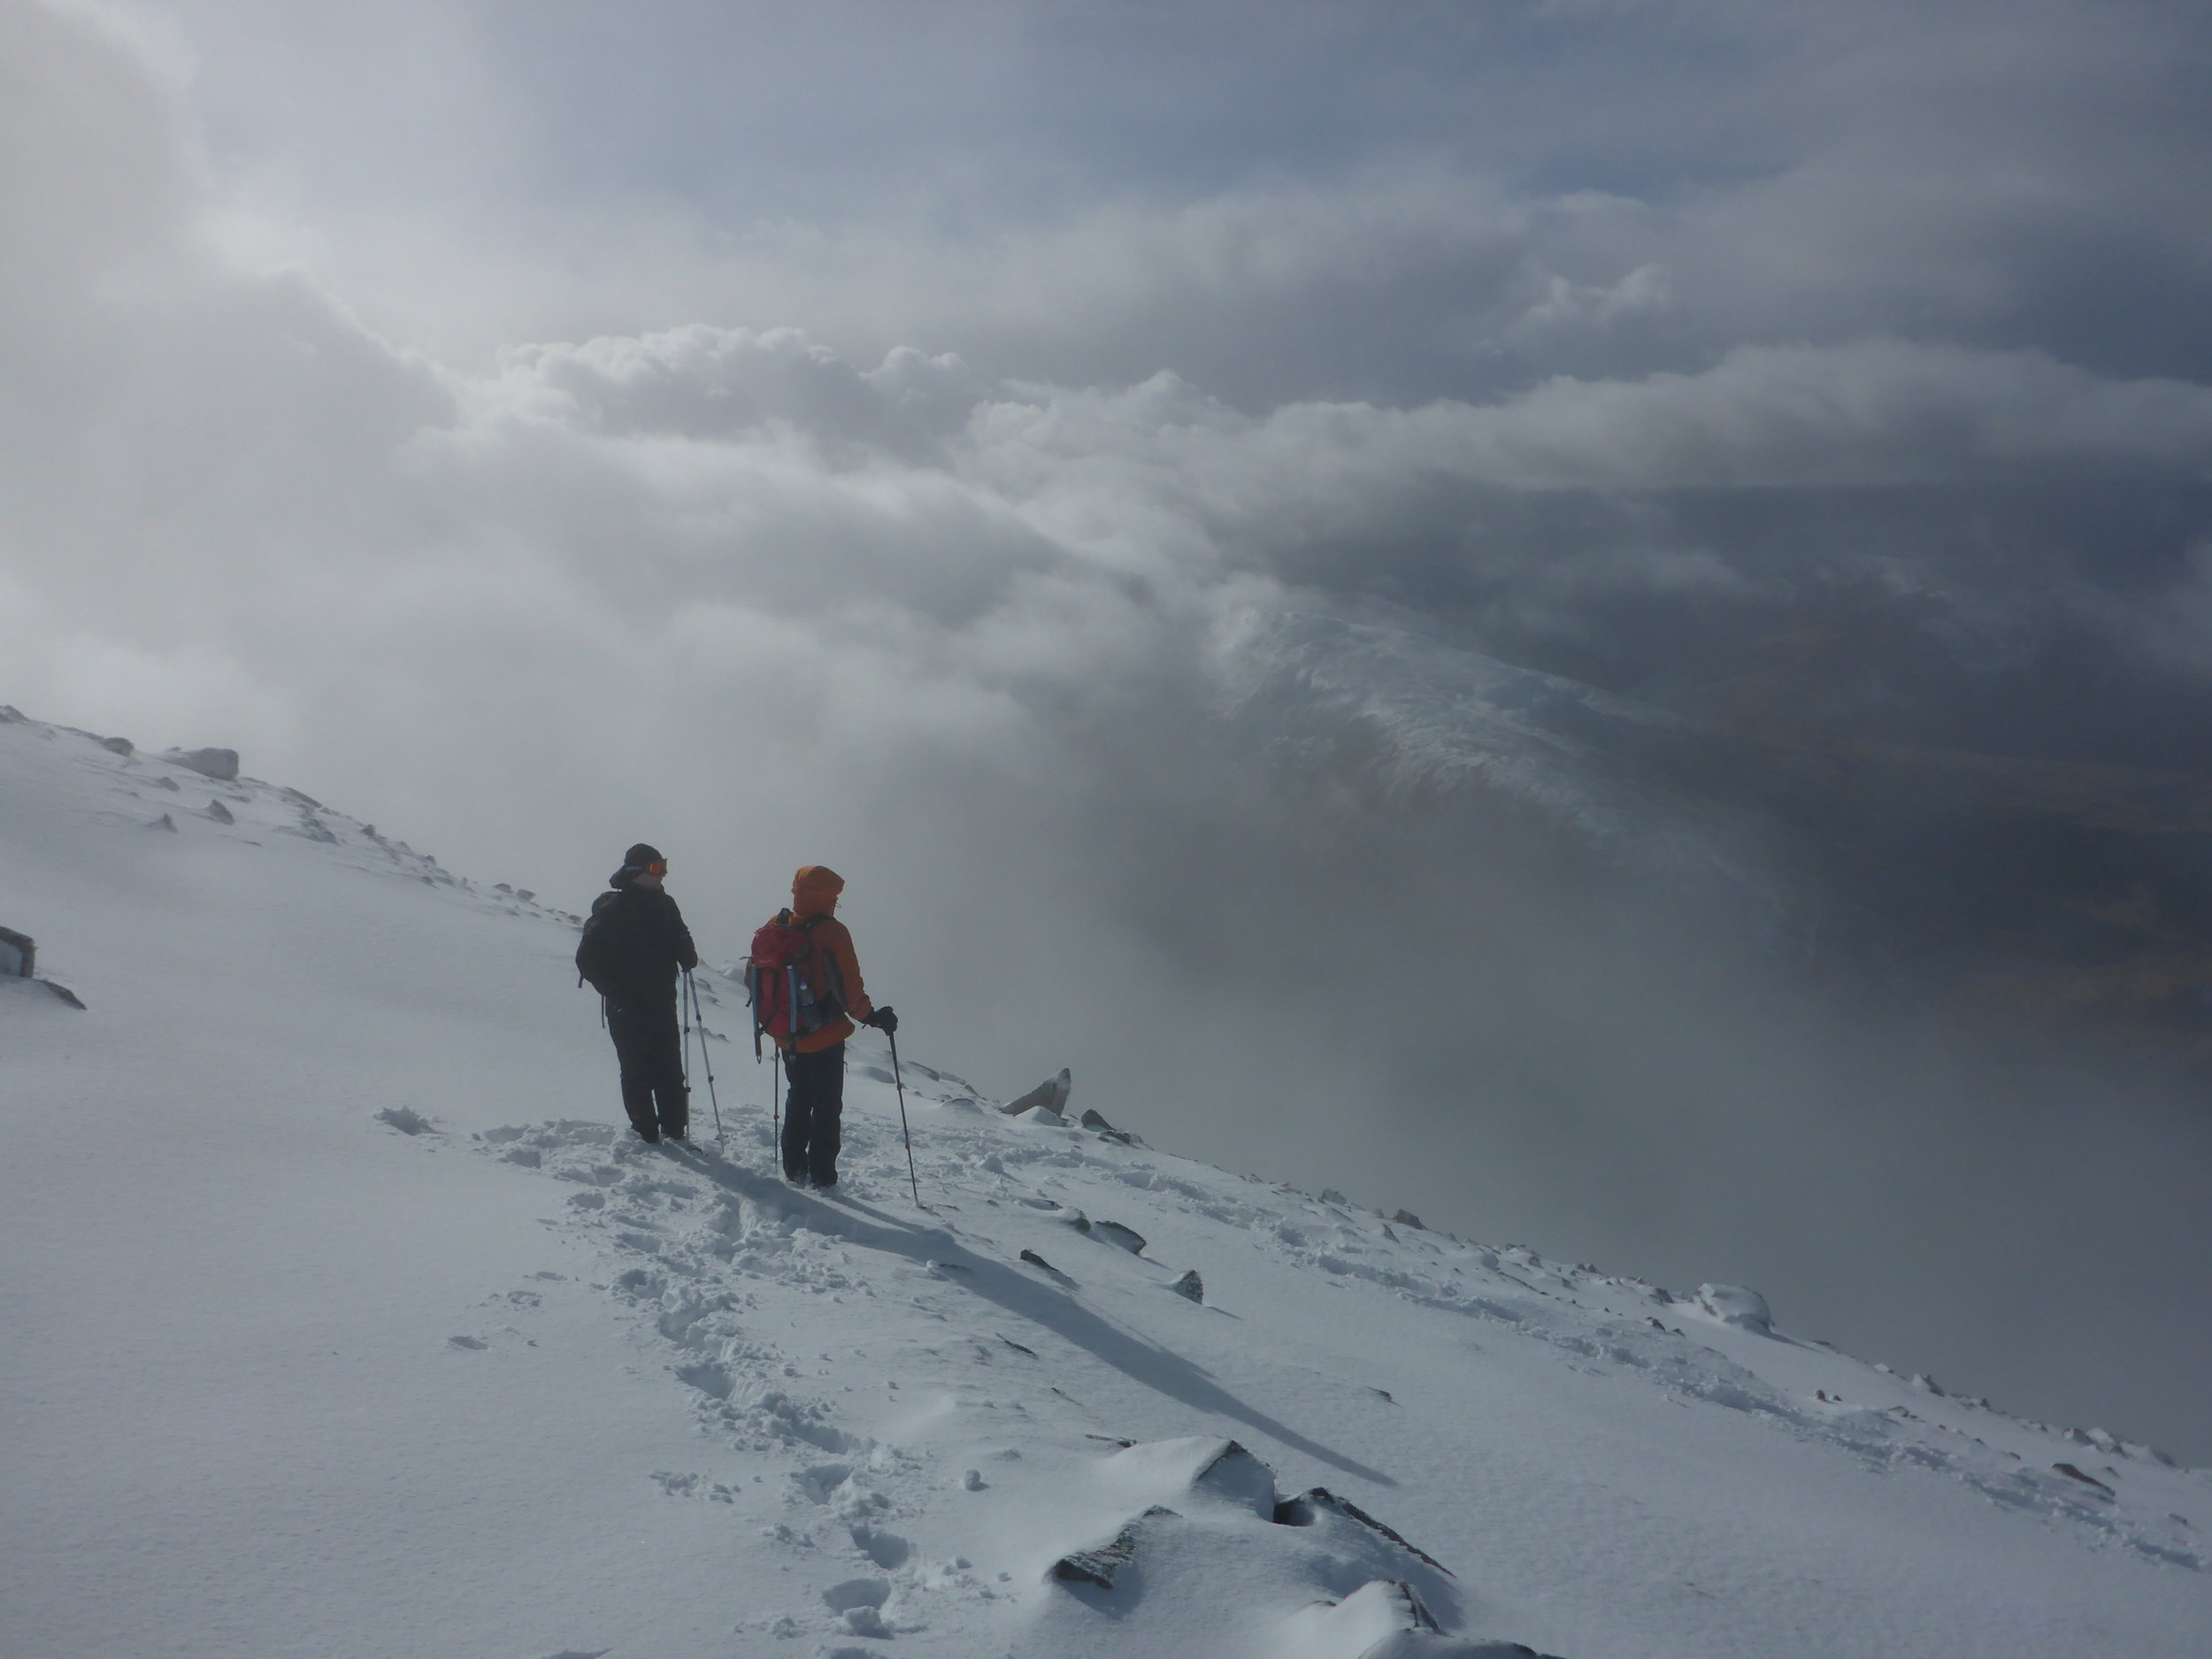 Deep snow on the upper slopes of Ben Nevis.